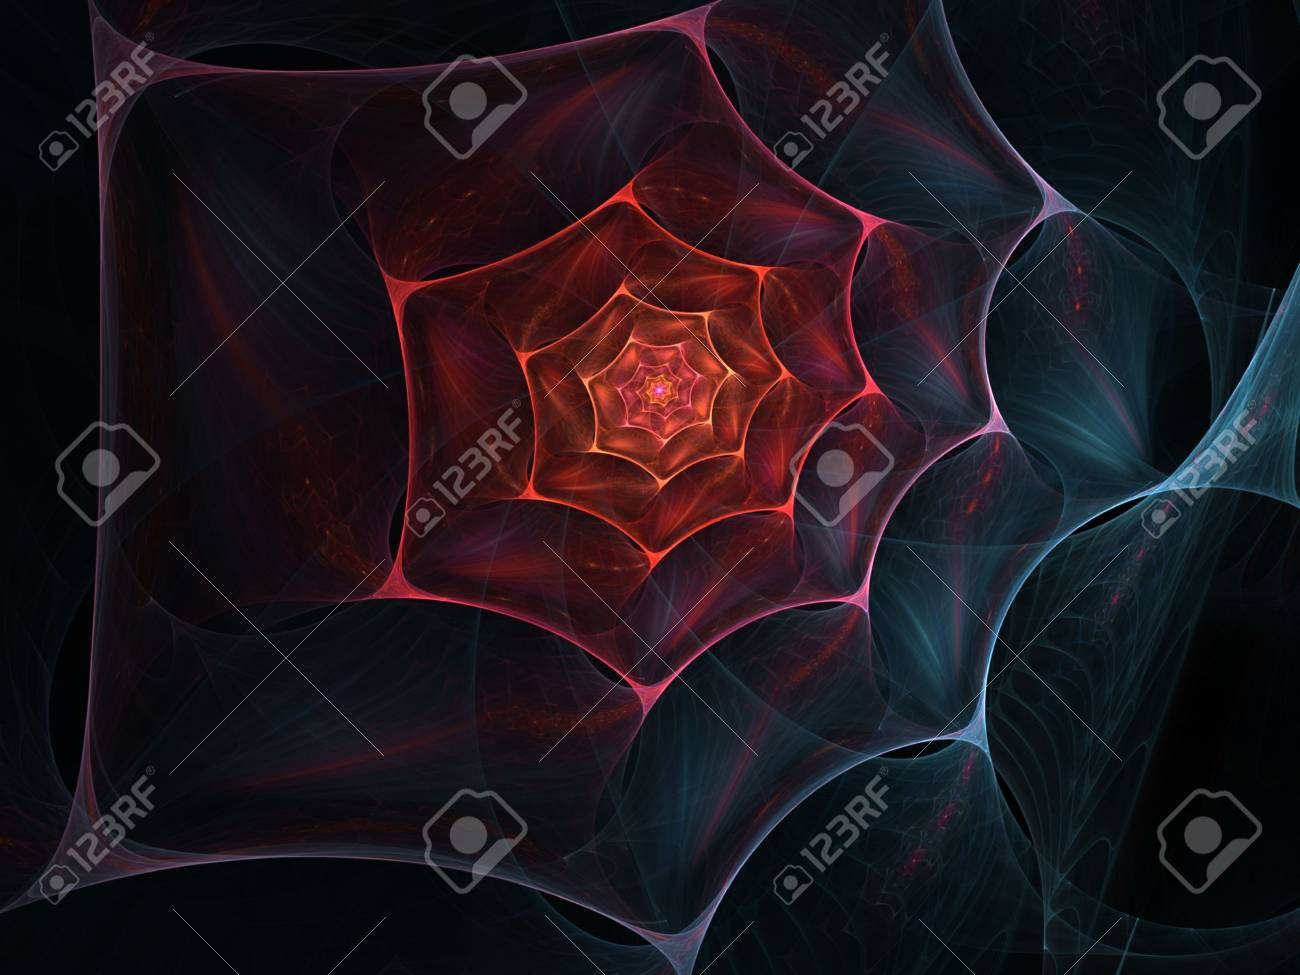 Connected web effect wispy spiral (computer generated, fractal abstract background) Stock Photo - 1796265